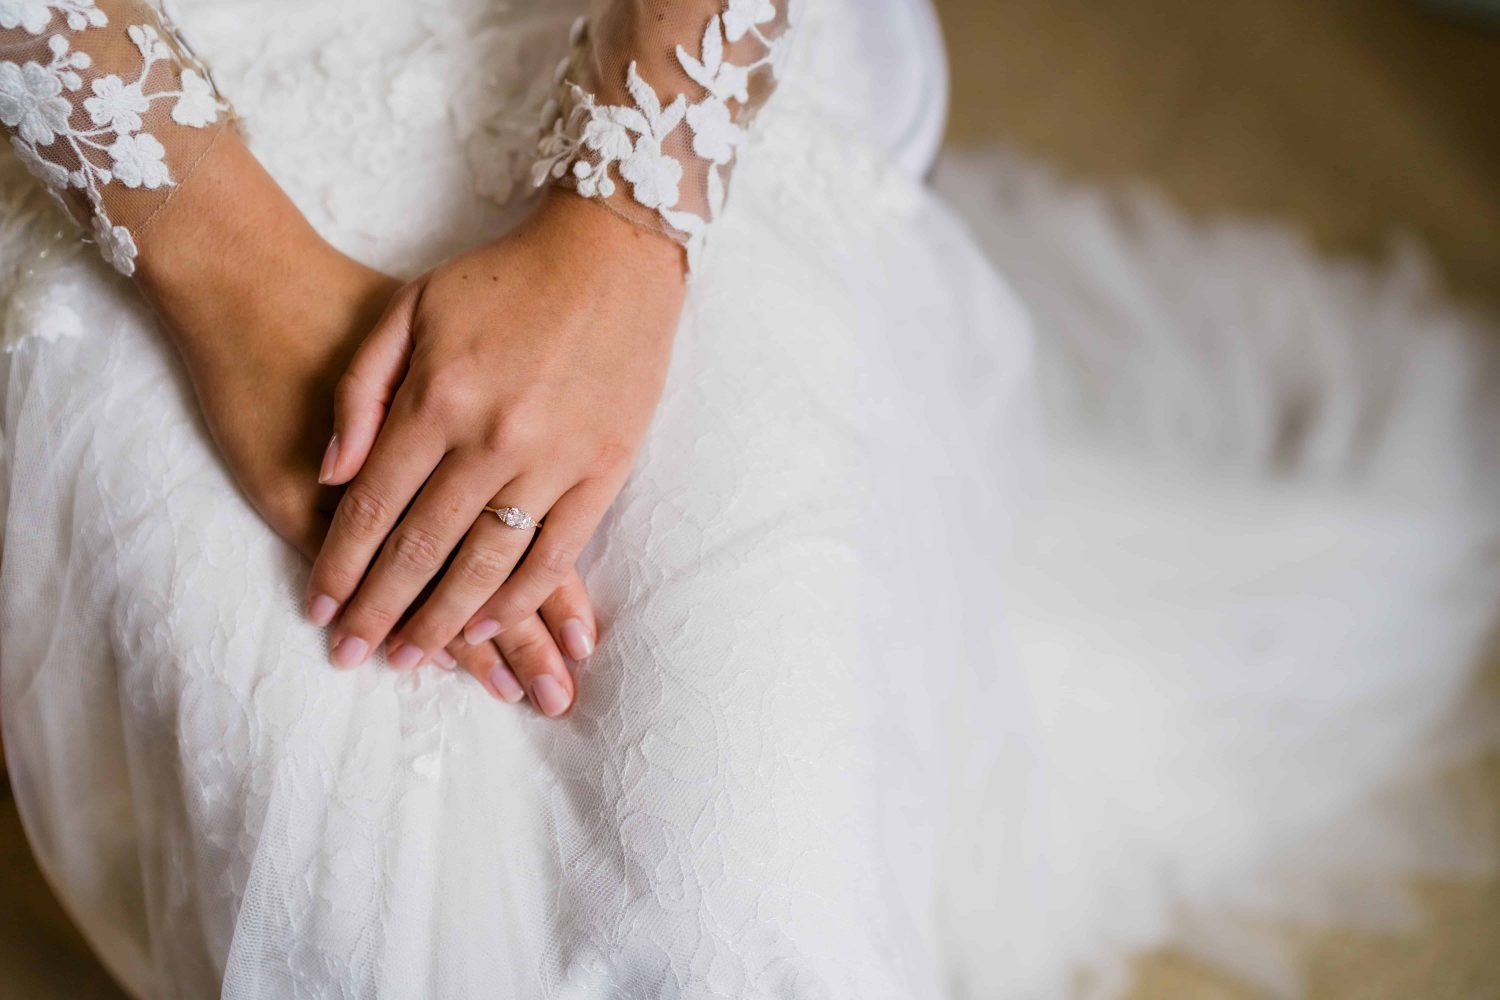 Brides hands during bridal prep